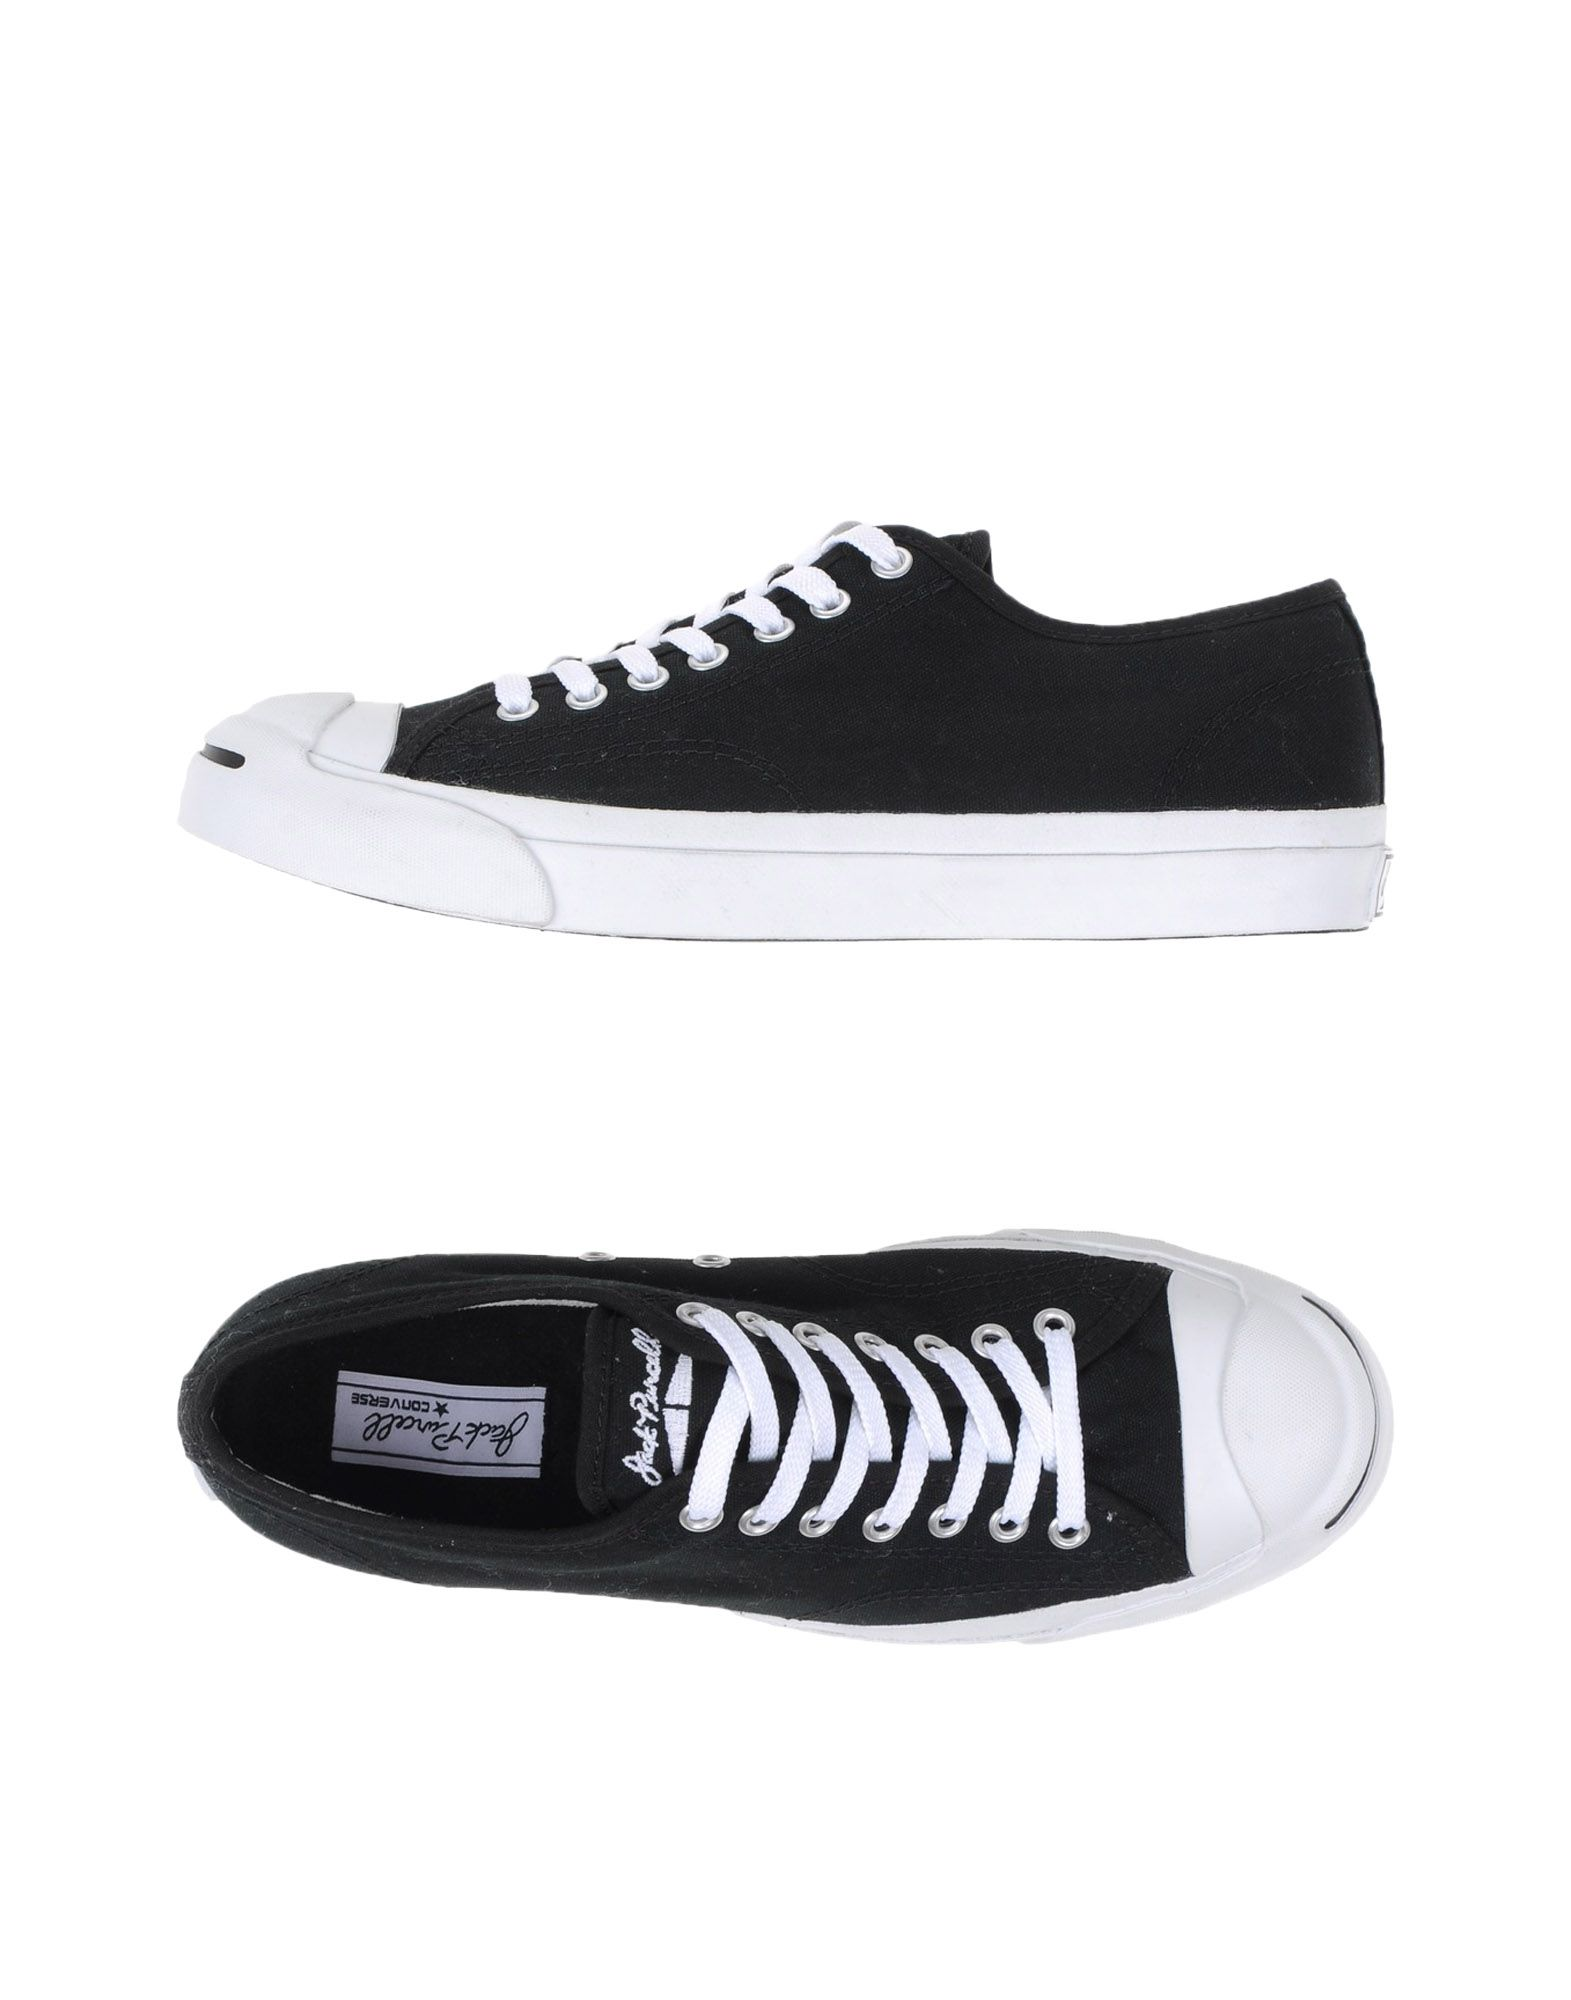 Baskets Converse Jack Purcell Homme - baskets Converse Jack Purcell   - 11004395PH